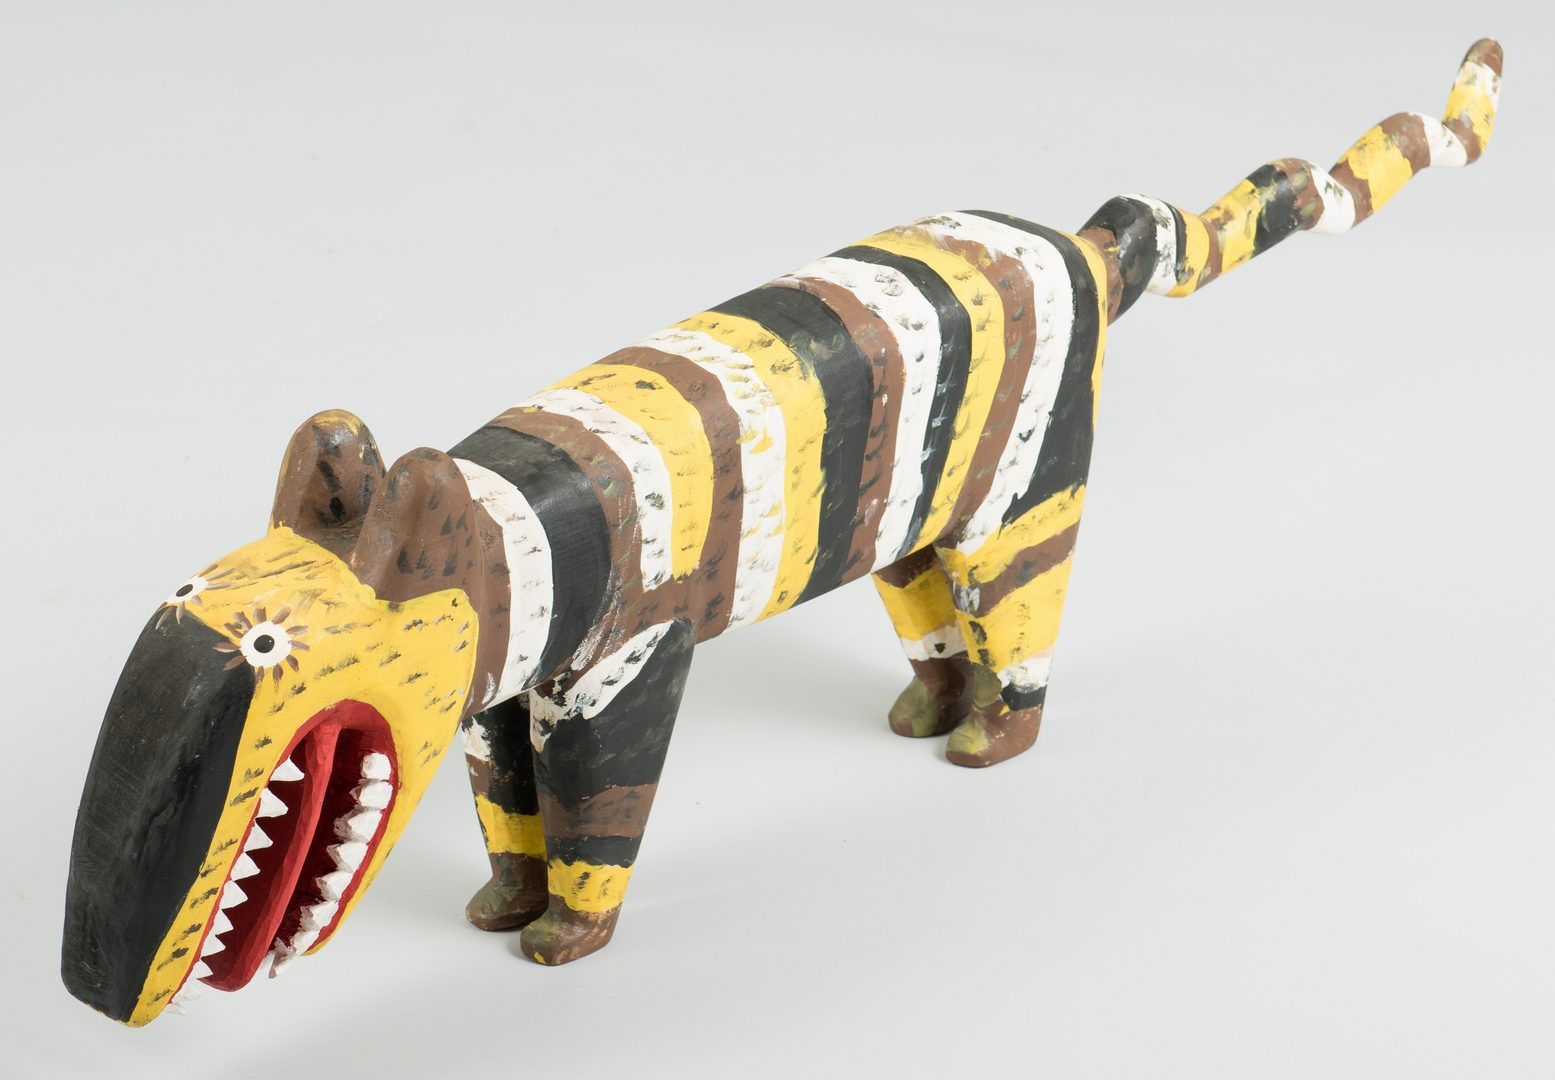 Lot 647: Minnie and Garland Adkins, Pole Cat Carving